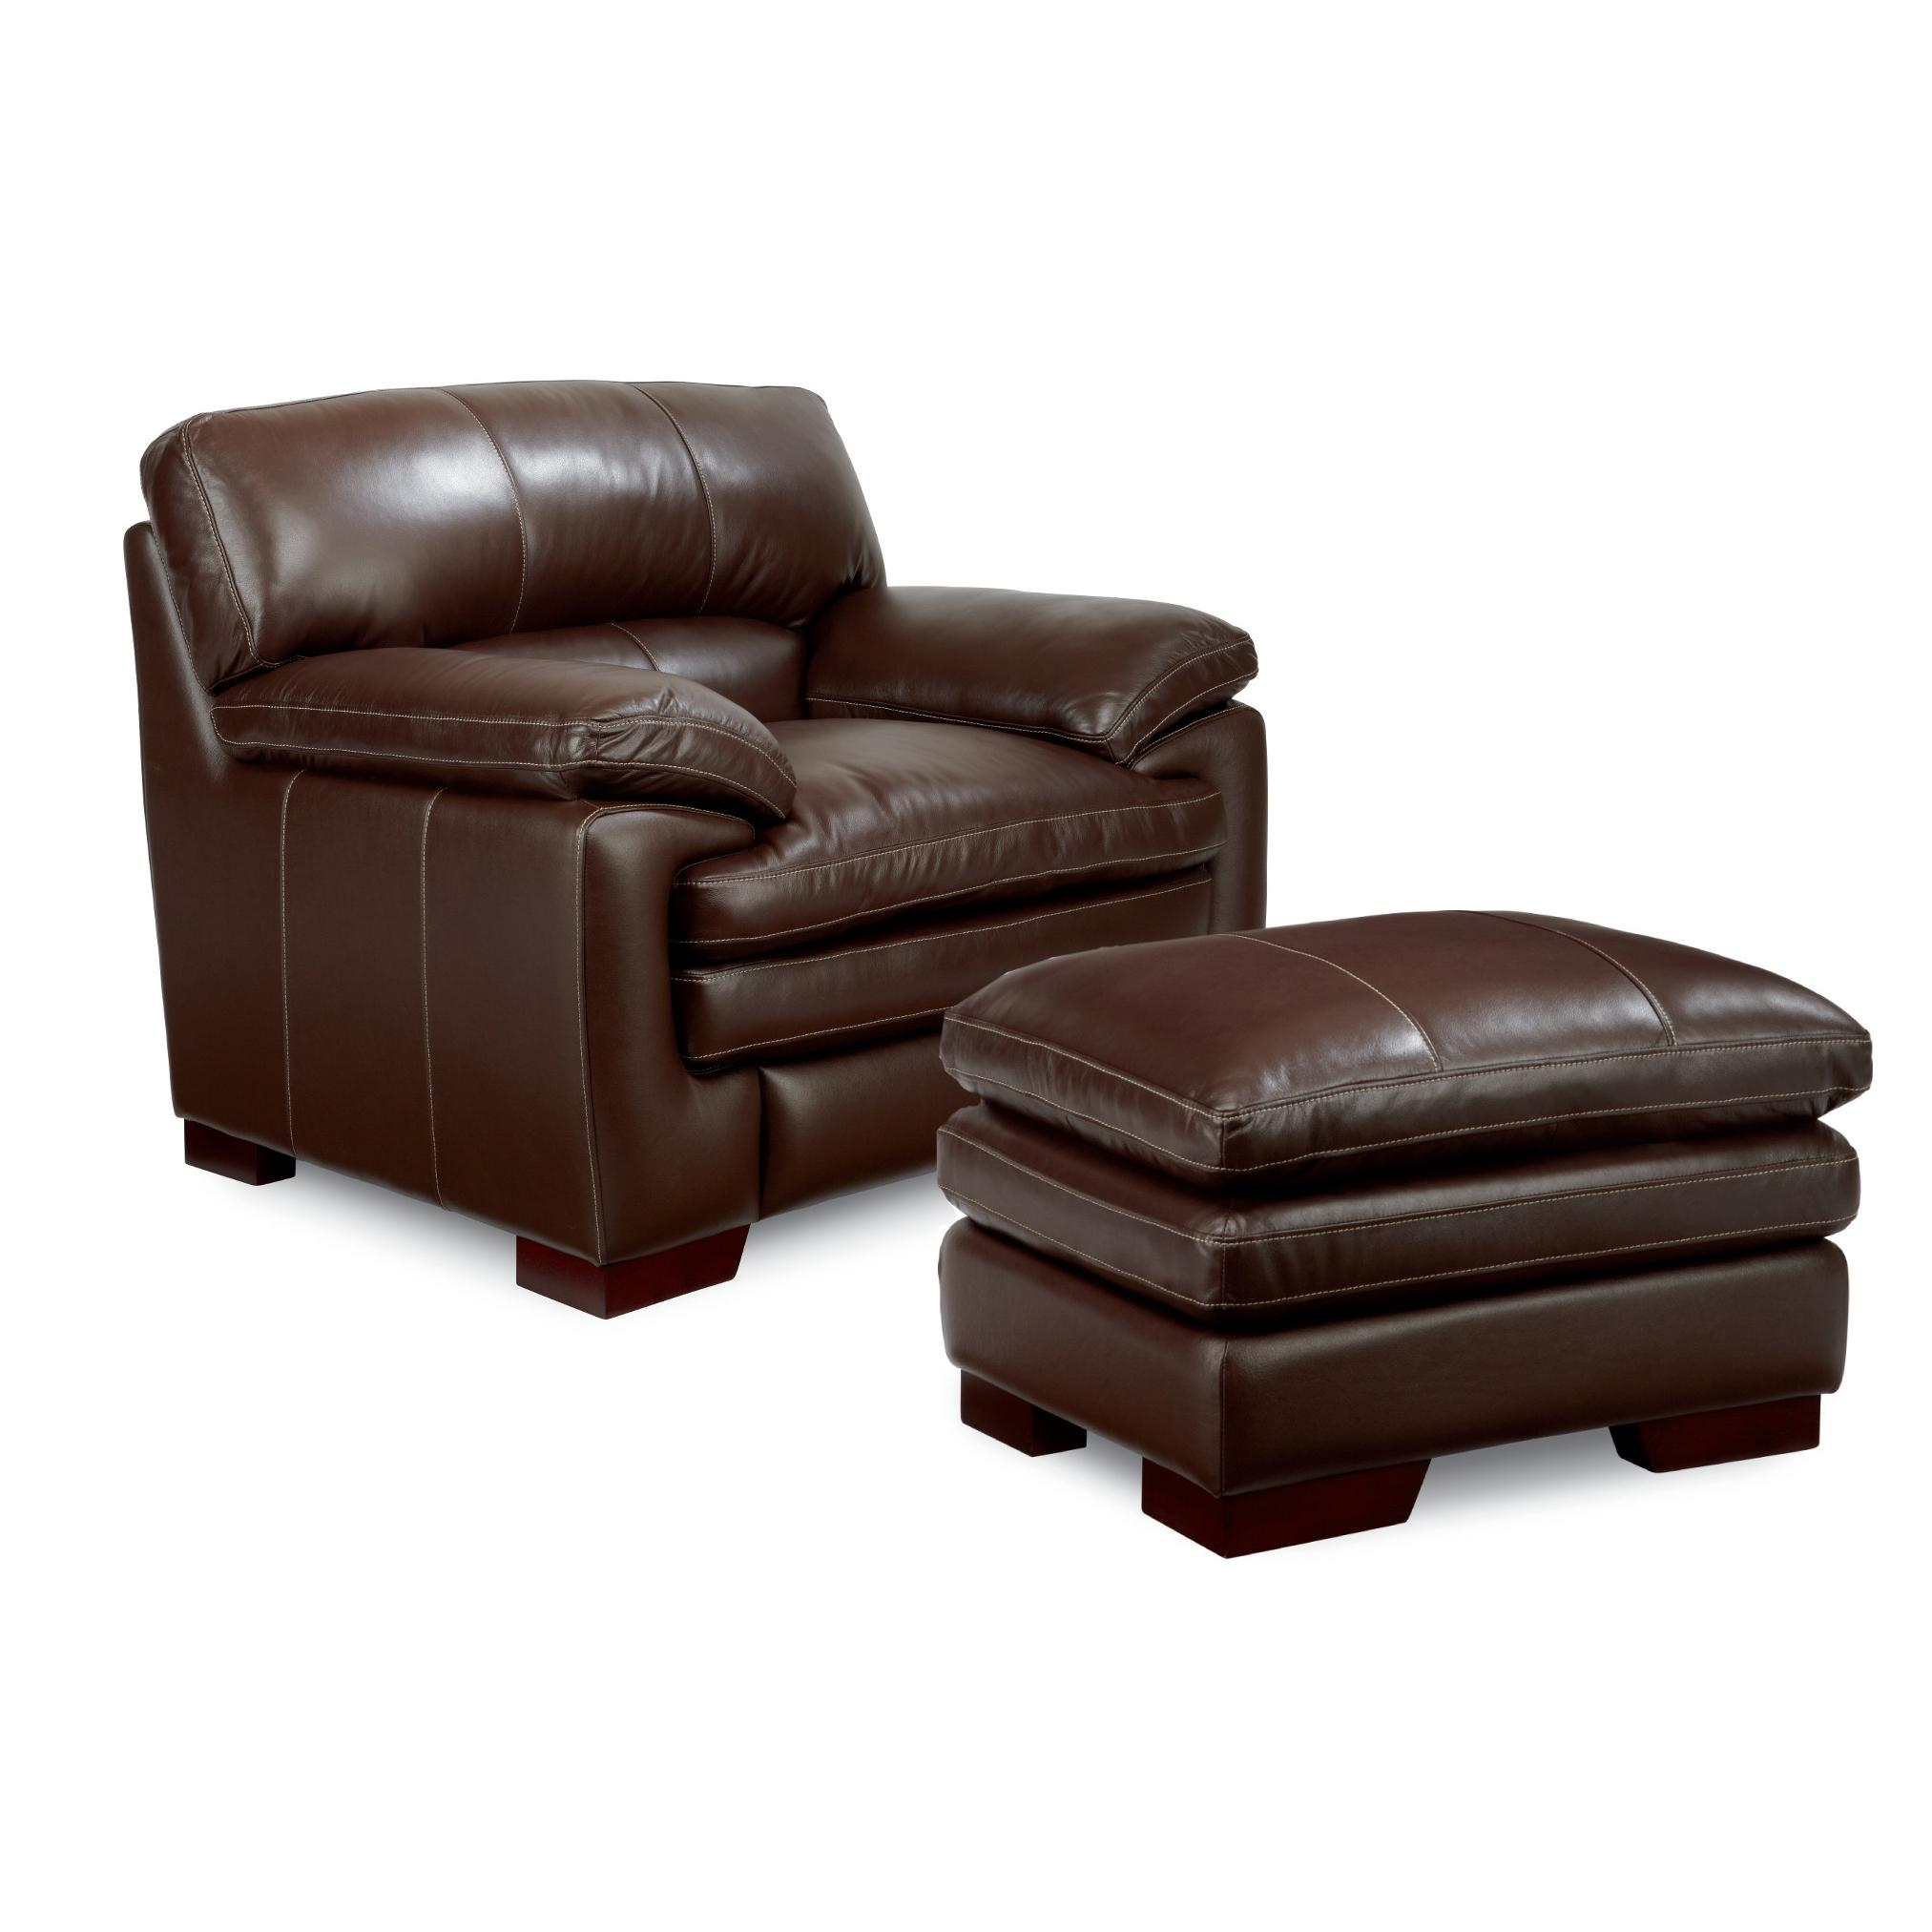 Casual Upholstered Stationary Chair and Ottoman Set by La Z Boy